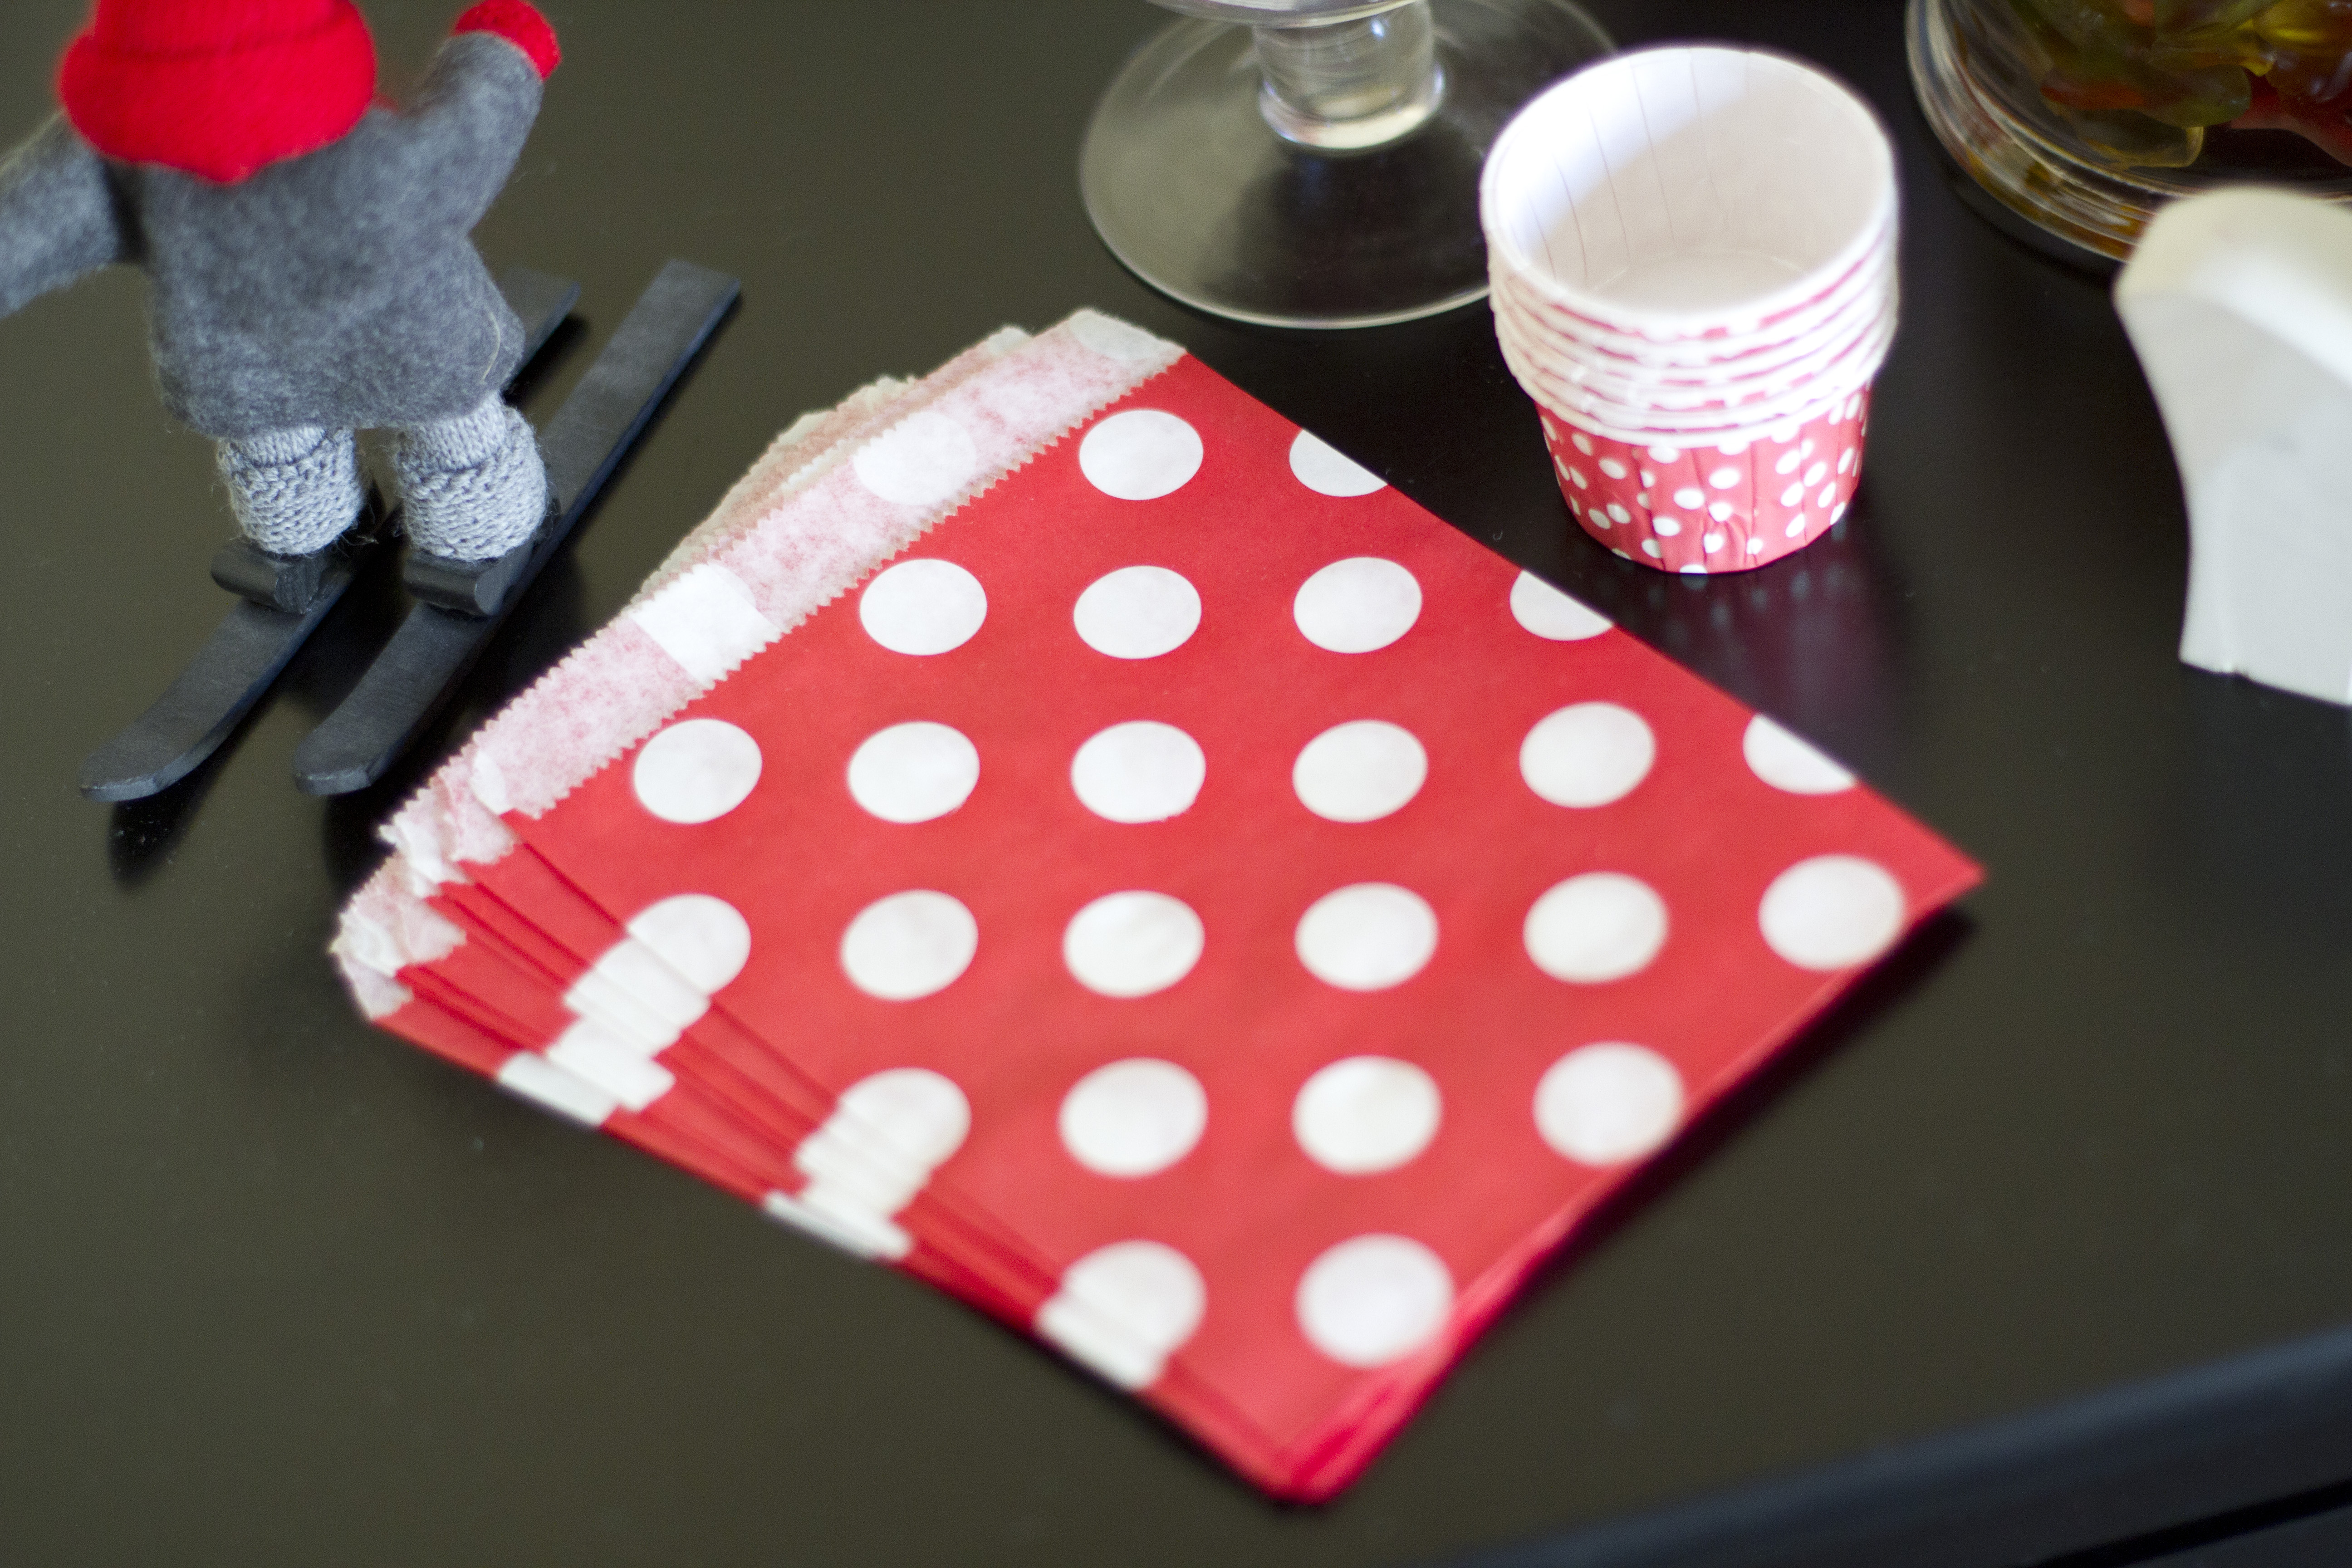 red and white polka dot napkins and baking cups